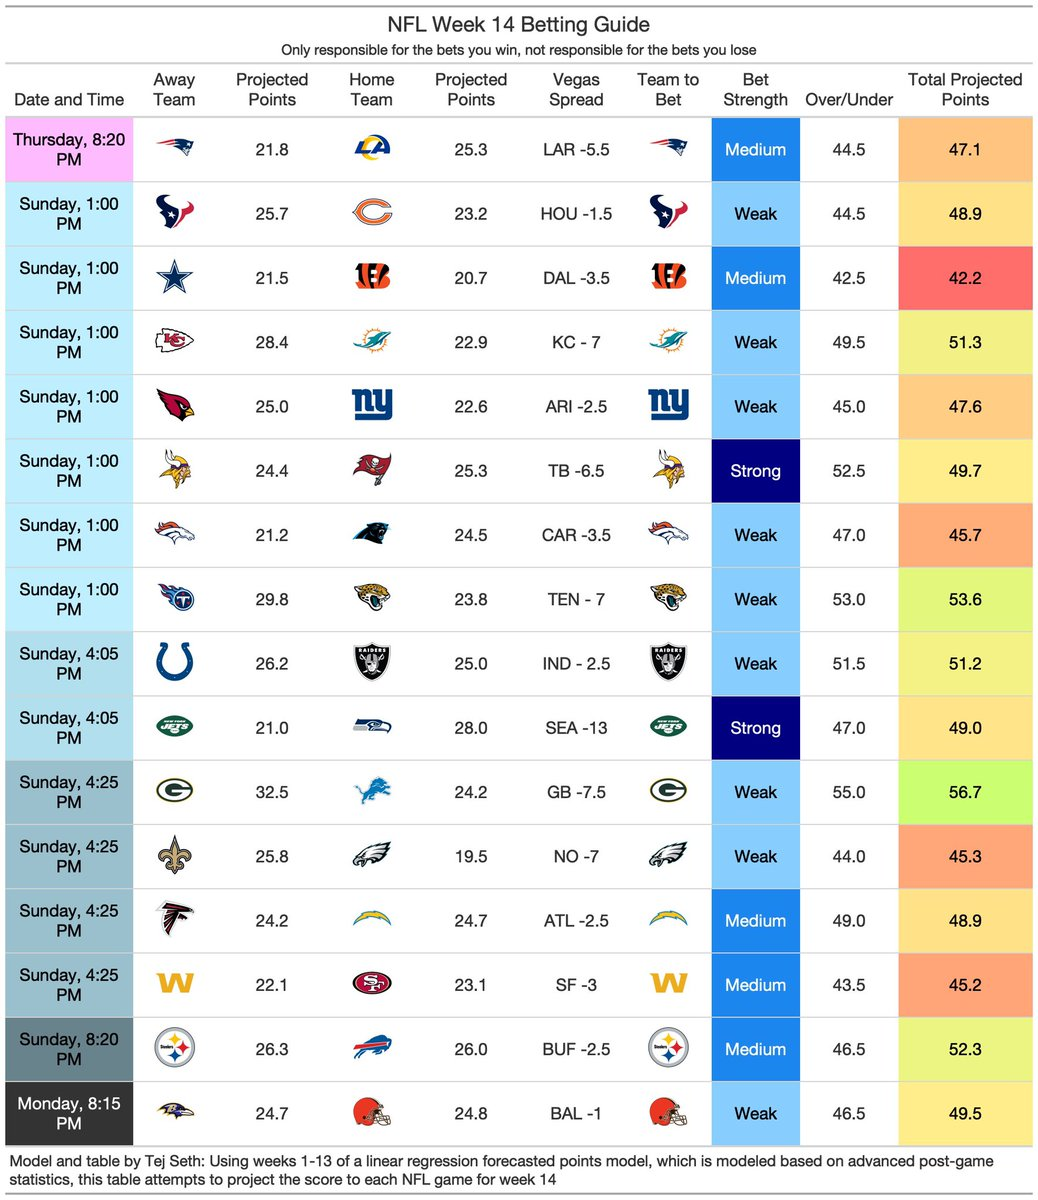 Michigan Football Analytics On Twitter I M Really Excited To Share This Using Linear Regression Advanced And Basic Math Simple I Have Projected The Scores For All 16 Games For Week 14 Of